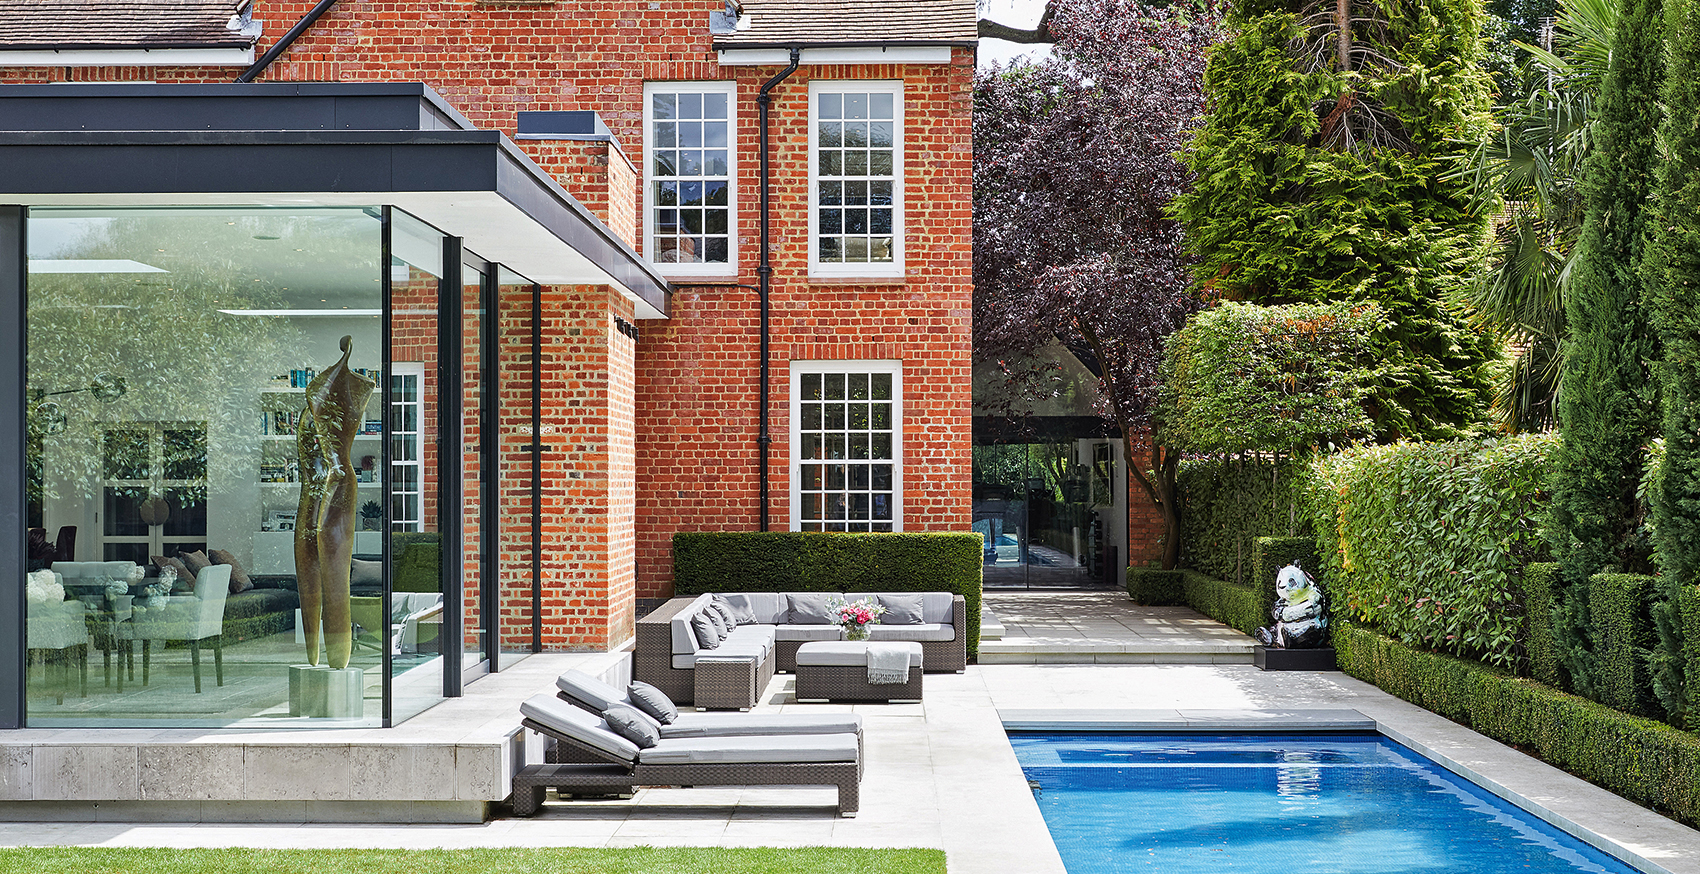 Exterior of house with dining room extension with glass wall, bespoke lap pool, a lawn and sun loungers